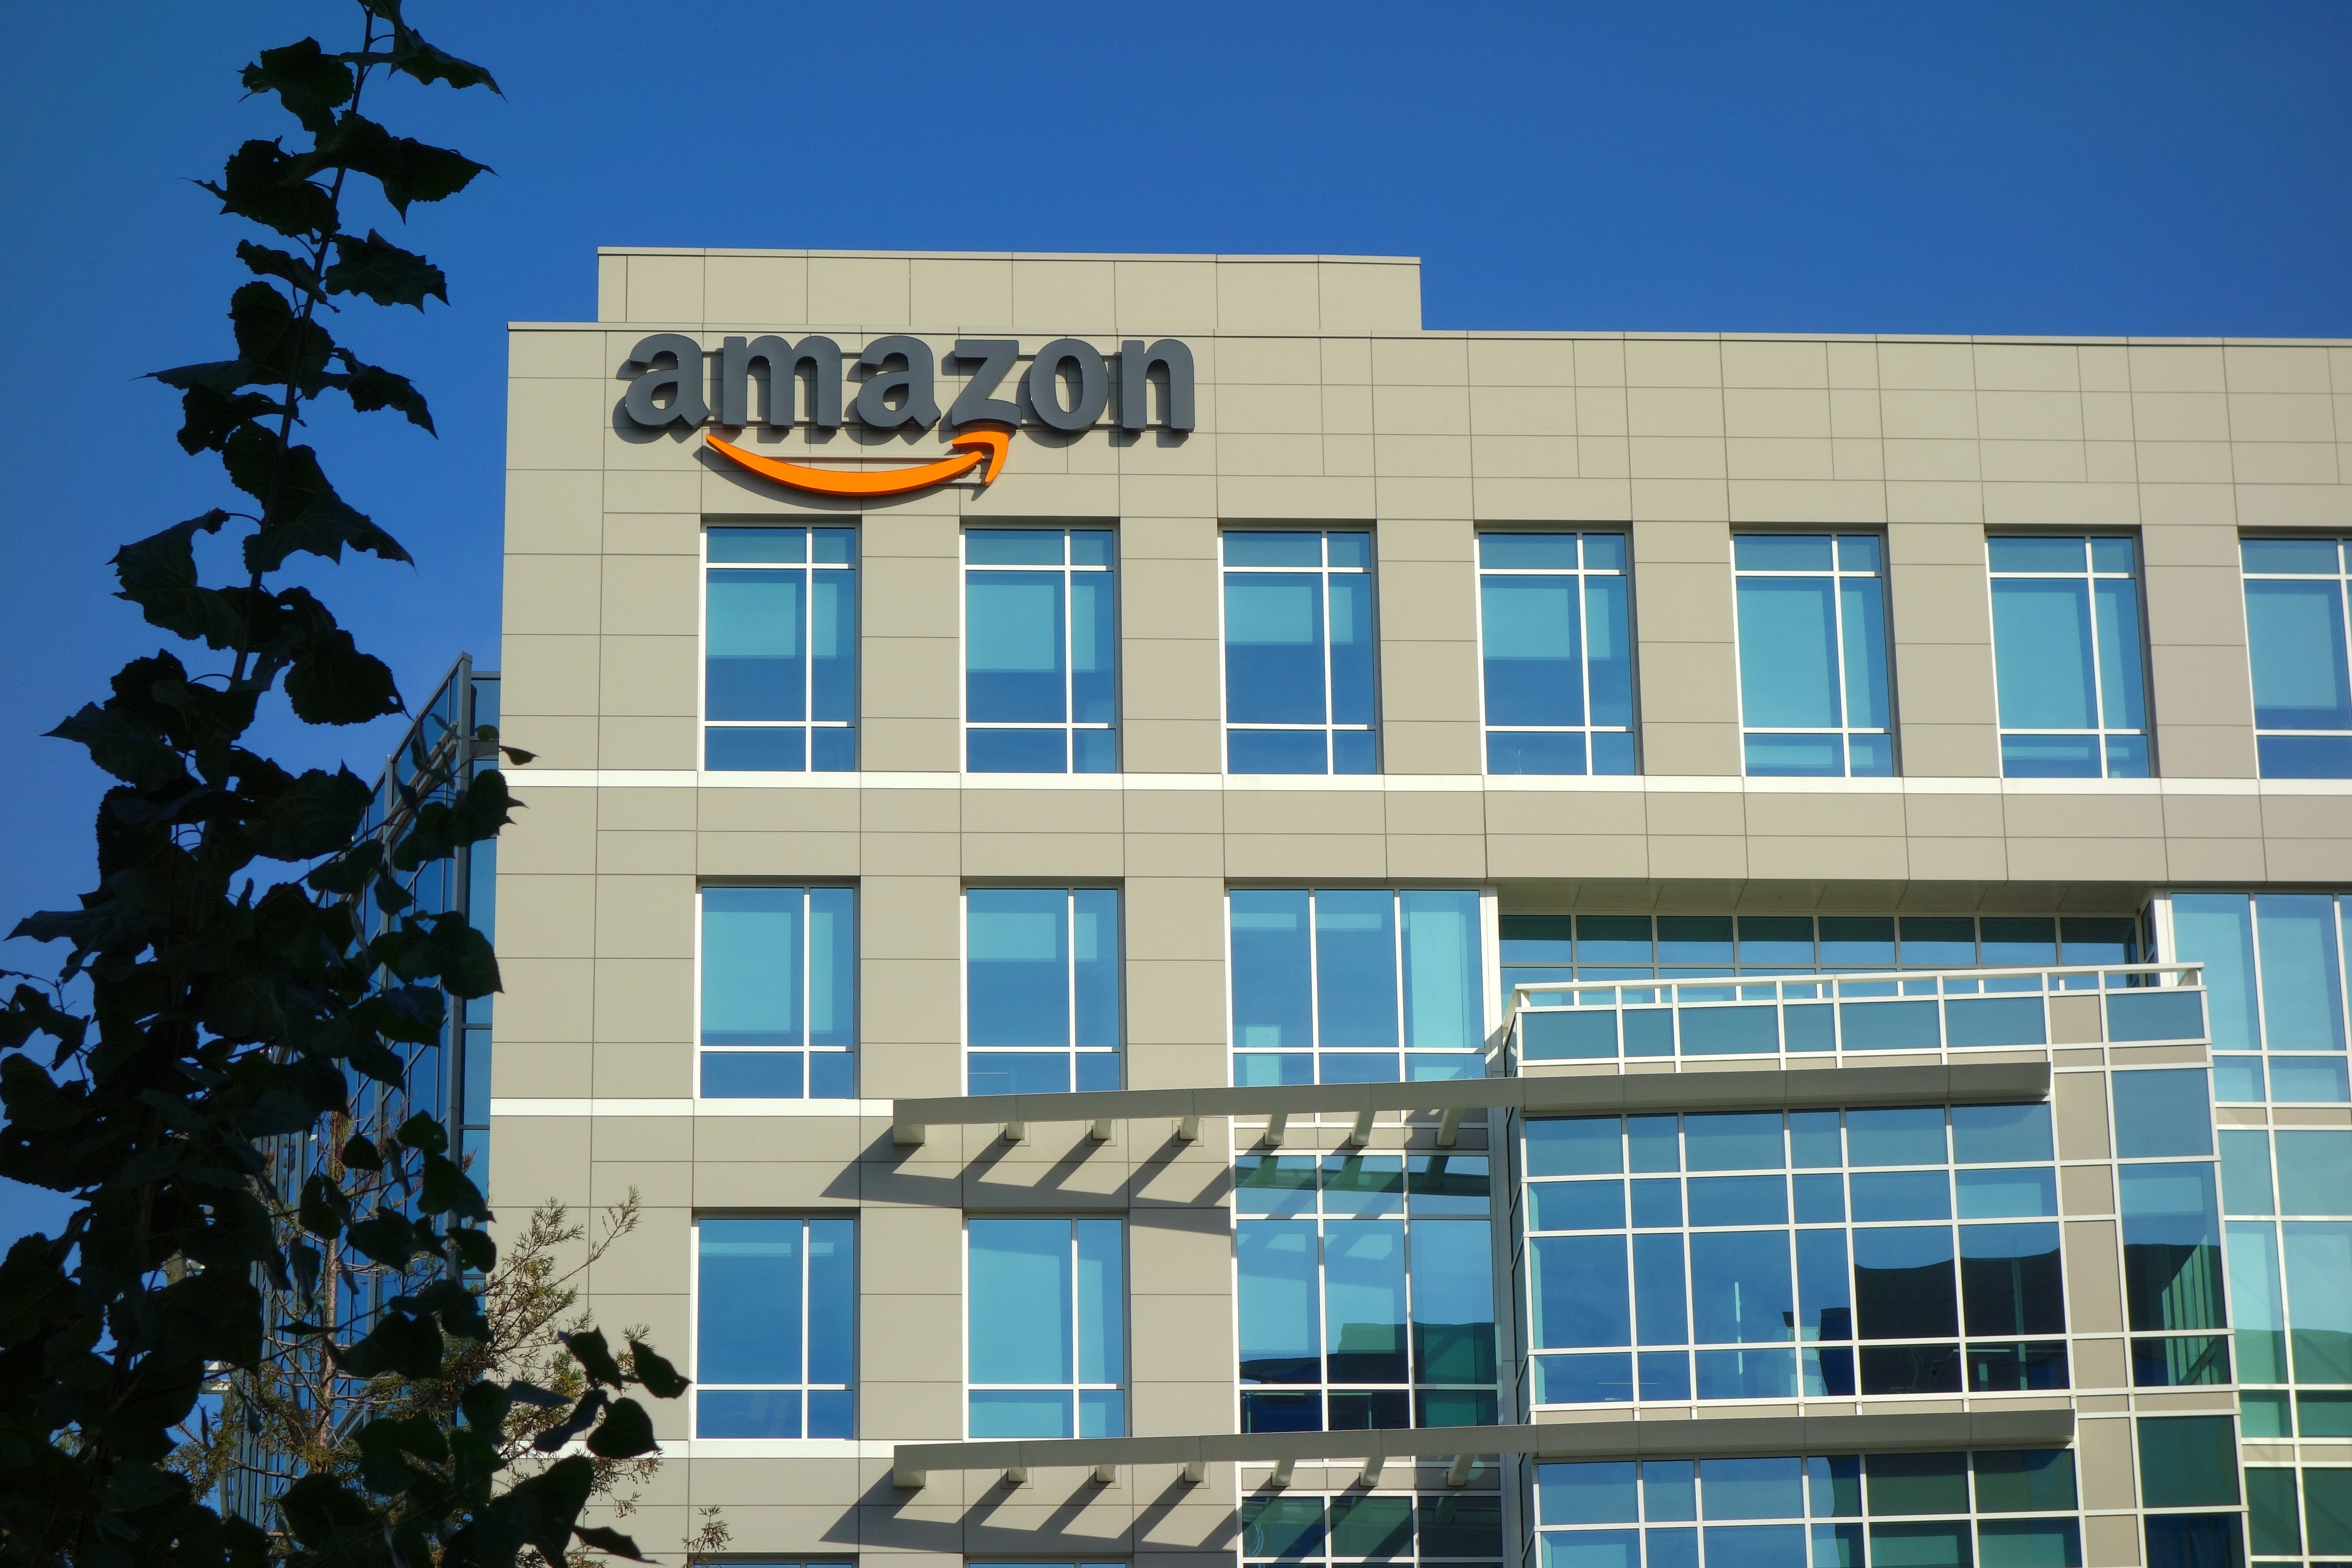 Amazon practices Inbound Marketing by working hard, making history, and having fun.